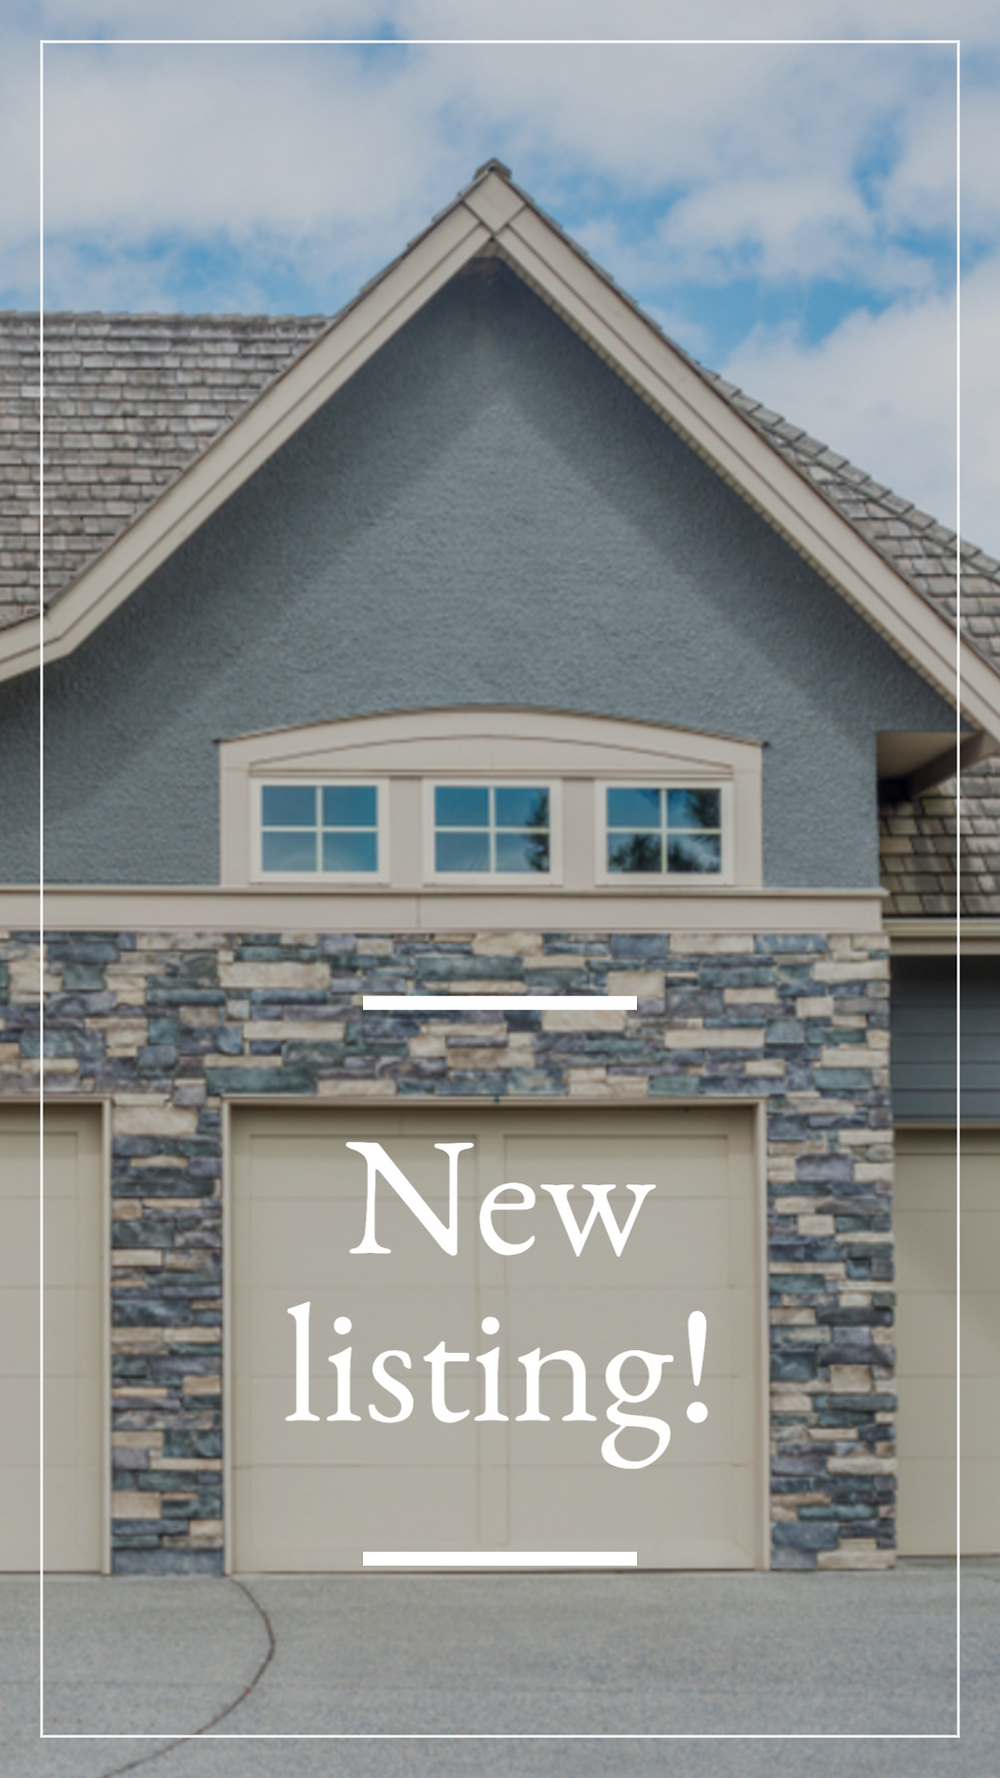 New listing Fall classic story template for Instagram stories and Facebook stories for realtors and real estate agents and brokers